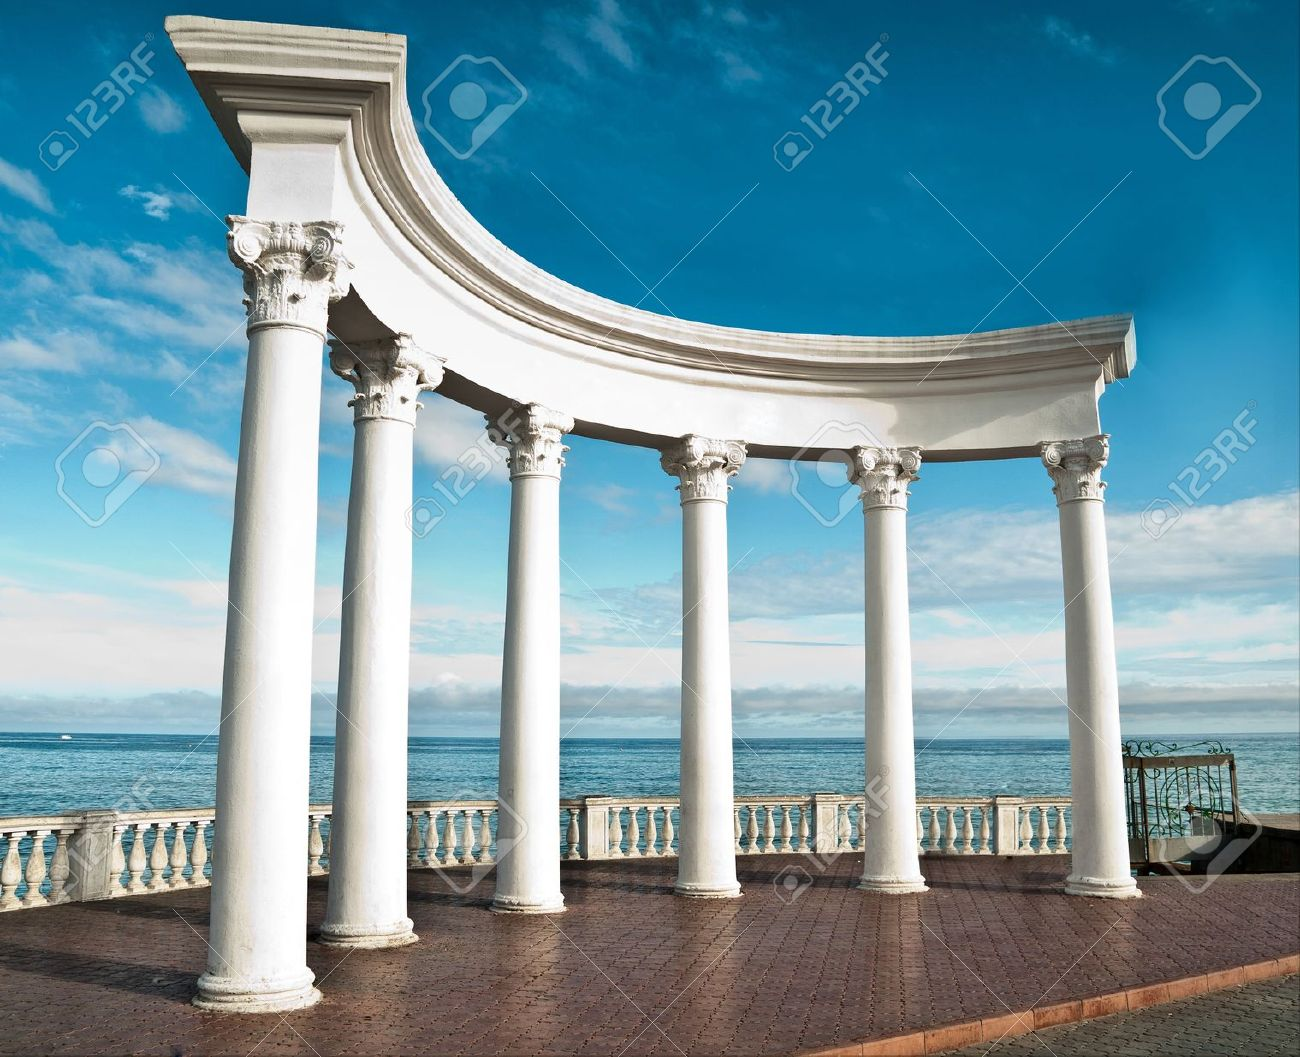 Ancient Greek Columns Against A Blue Sky And Sea Stock Photo